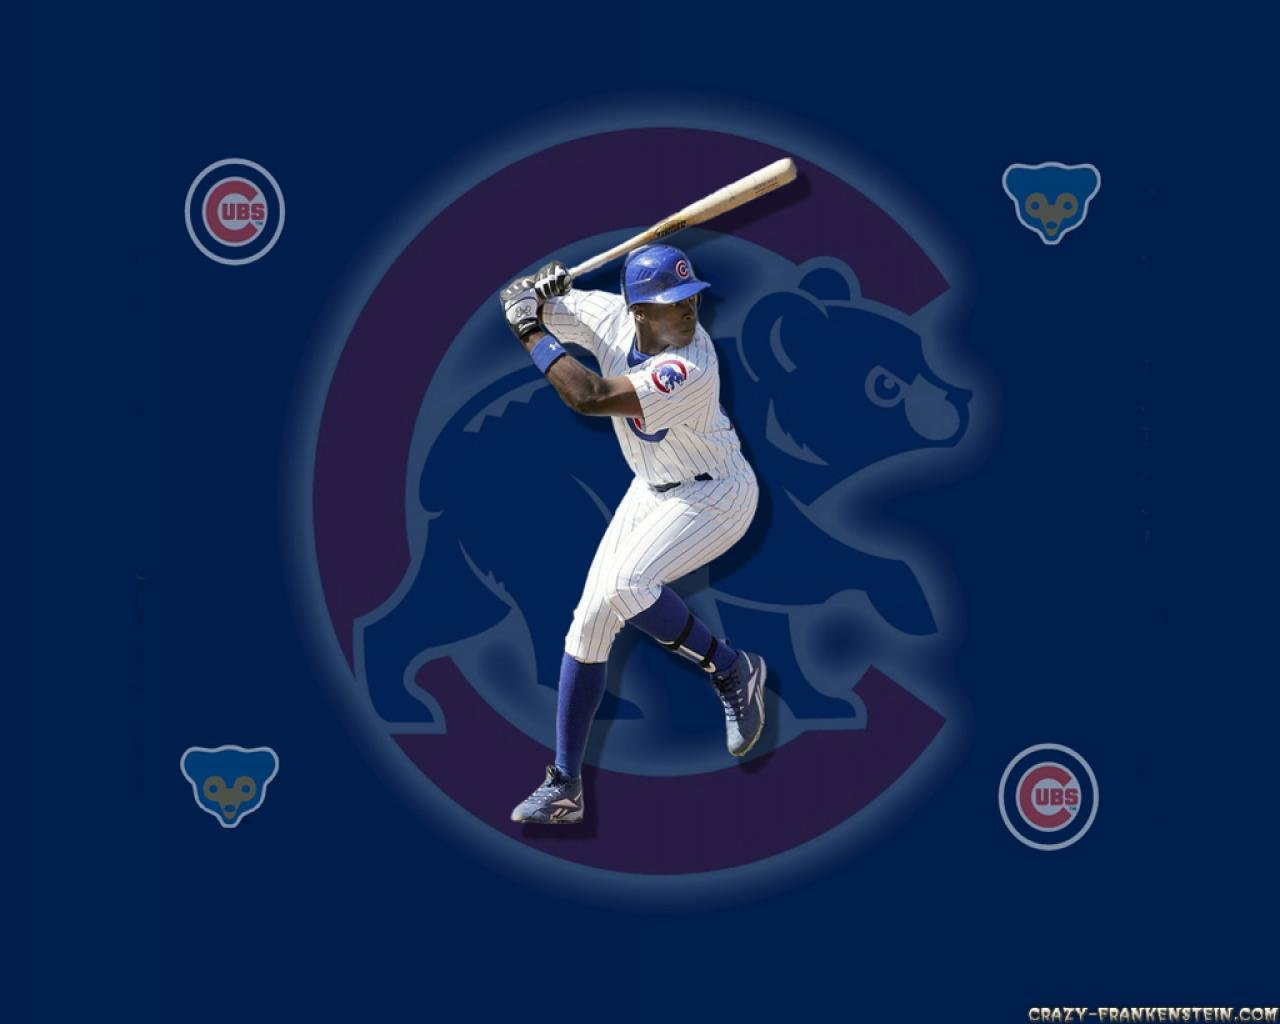 Chicago Cubs HD images 1280x1024